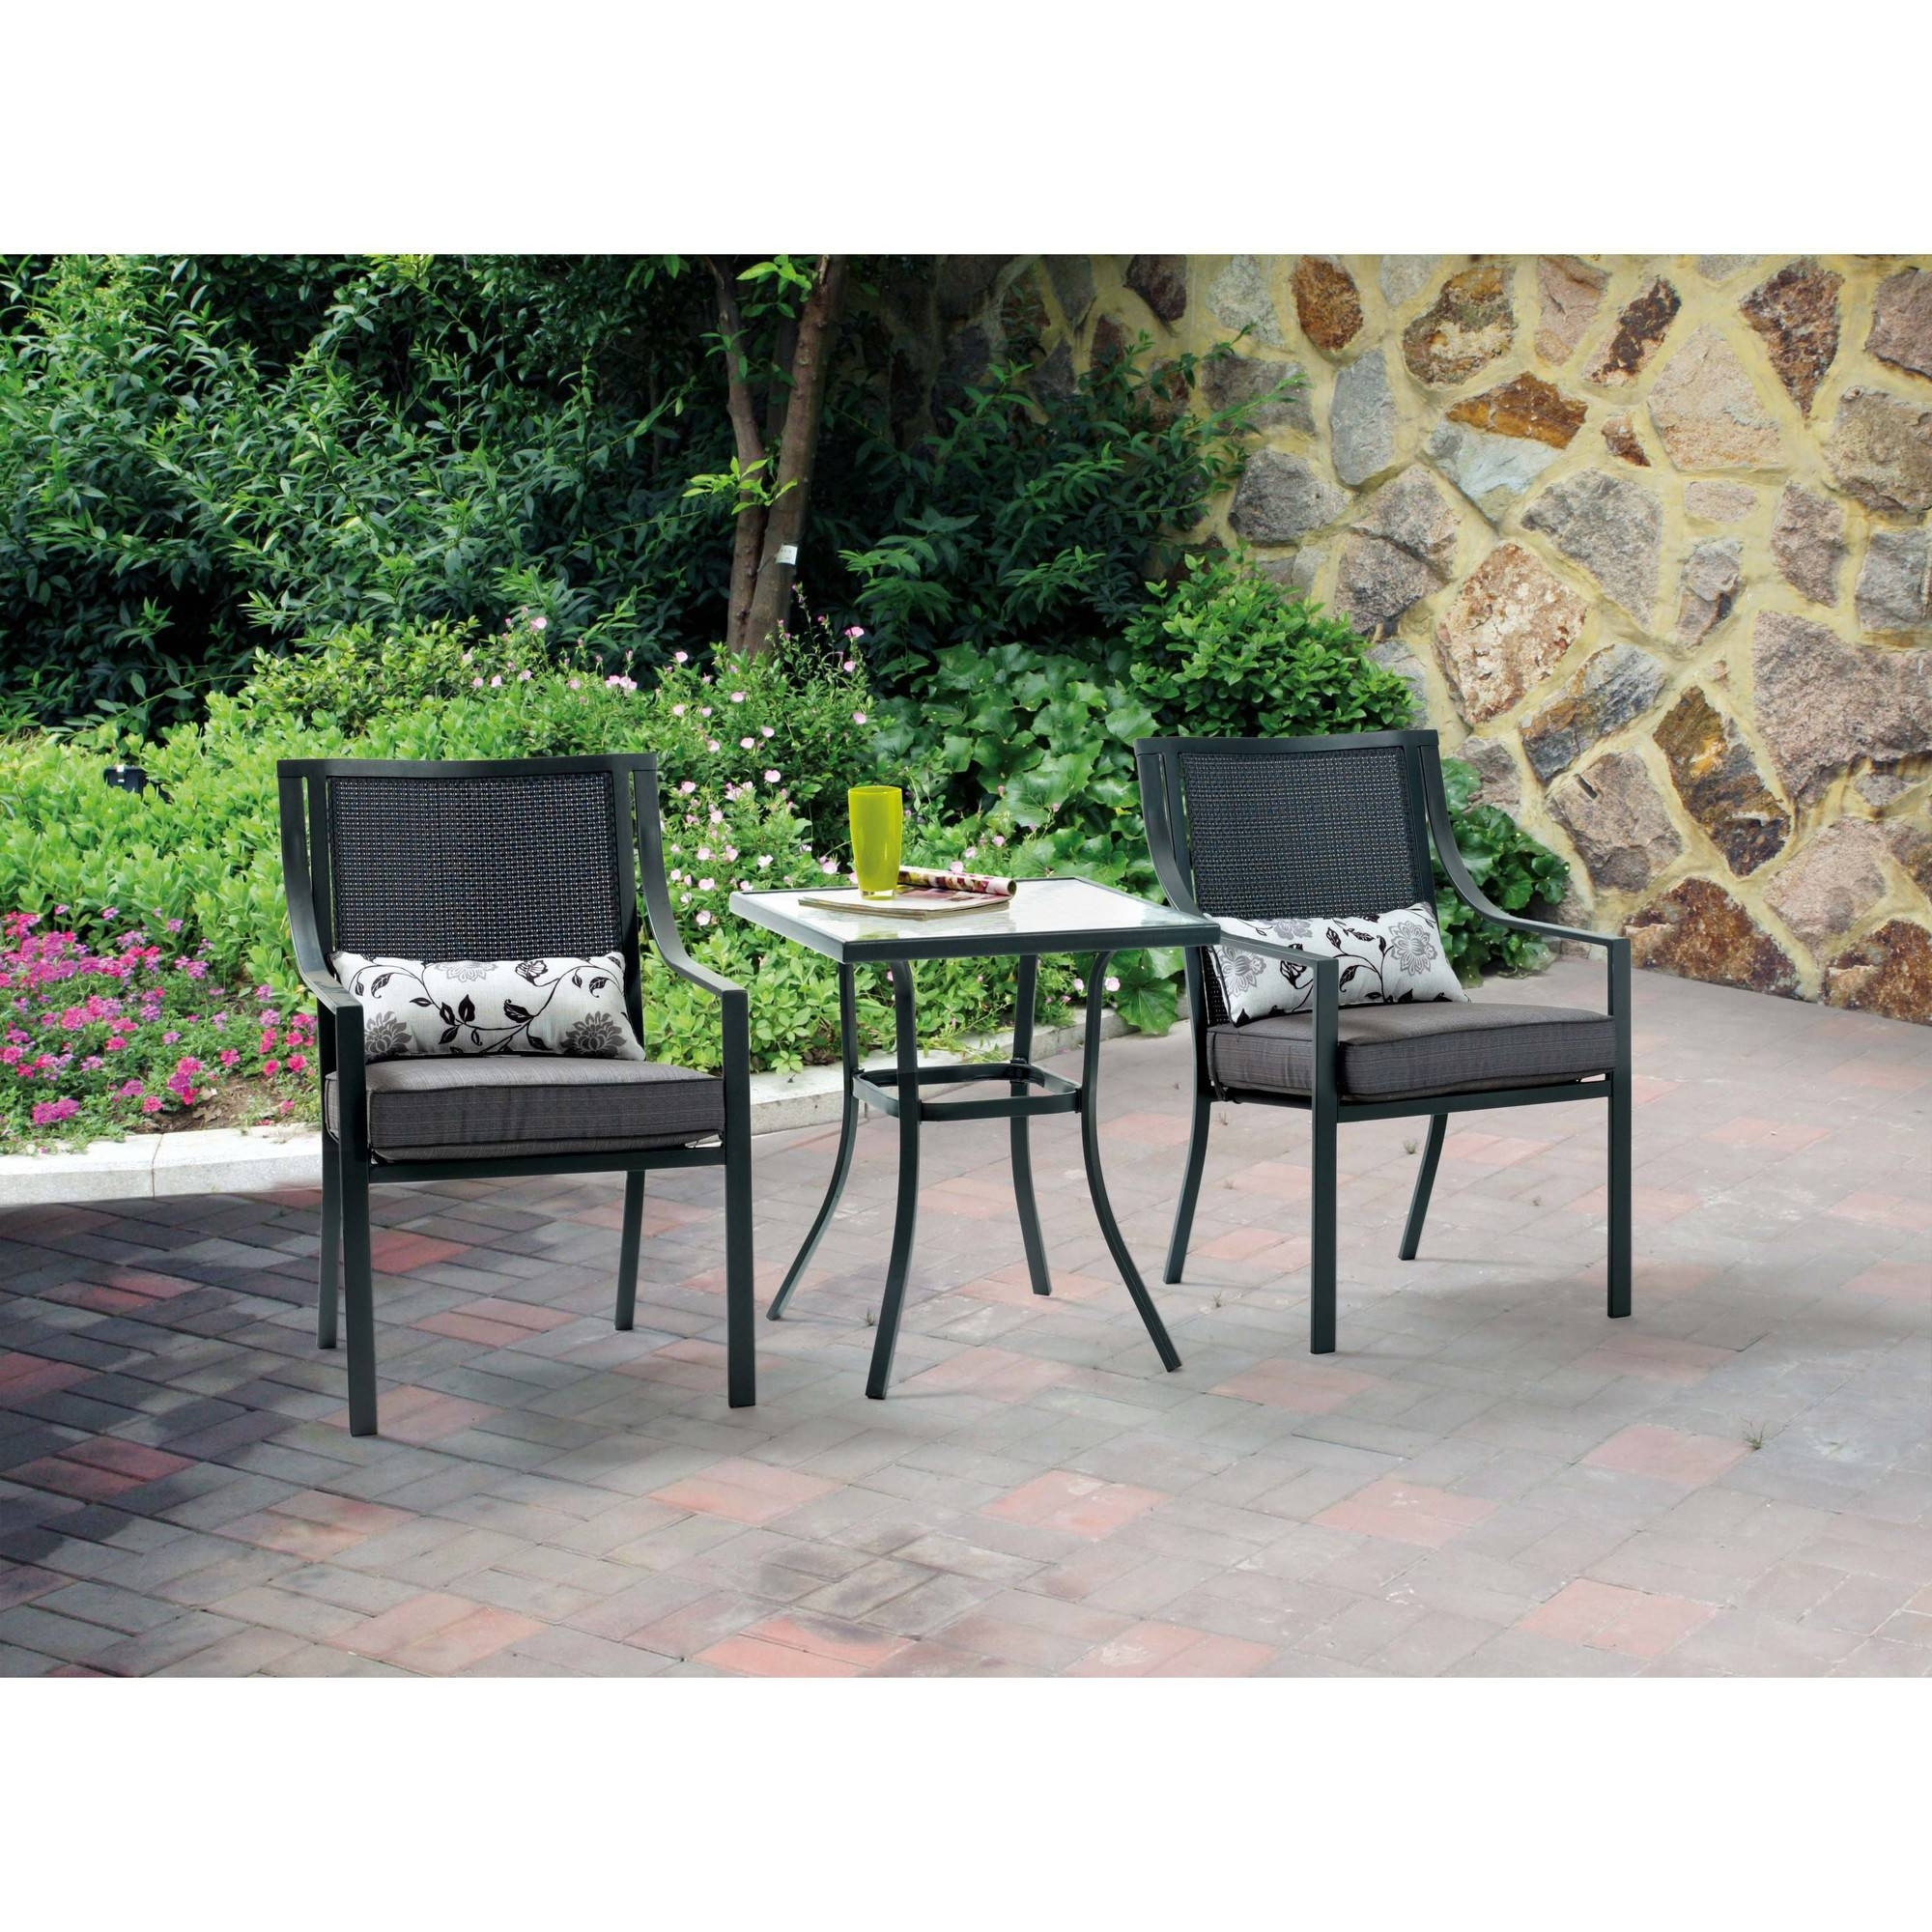 Outdoor Dining Table And Chairs Sets With Regard To Most Current Mainstays Alexandra Square 3 Piece Outdoor Bistro Set, Seats  (View 17 of 25)